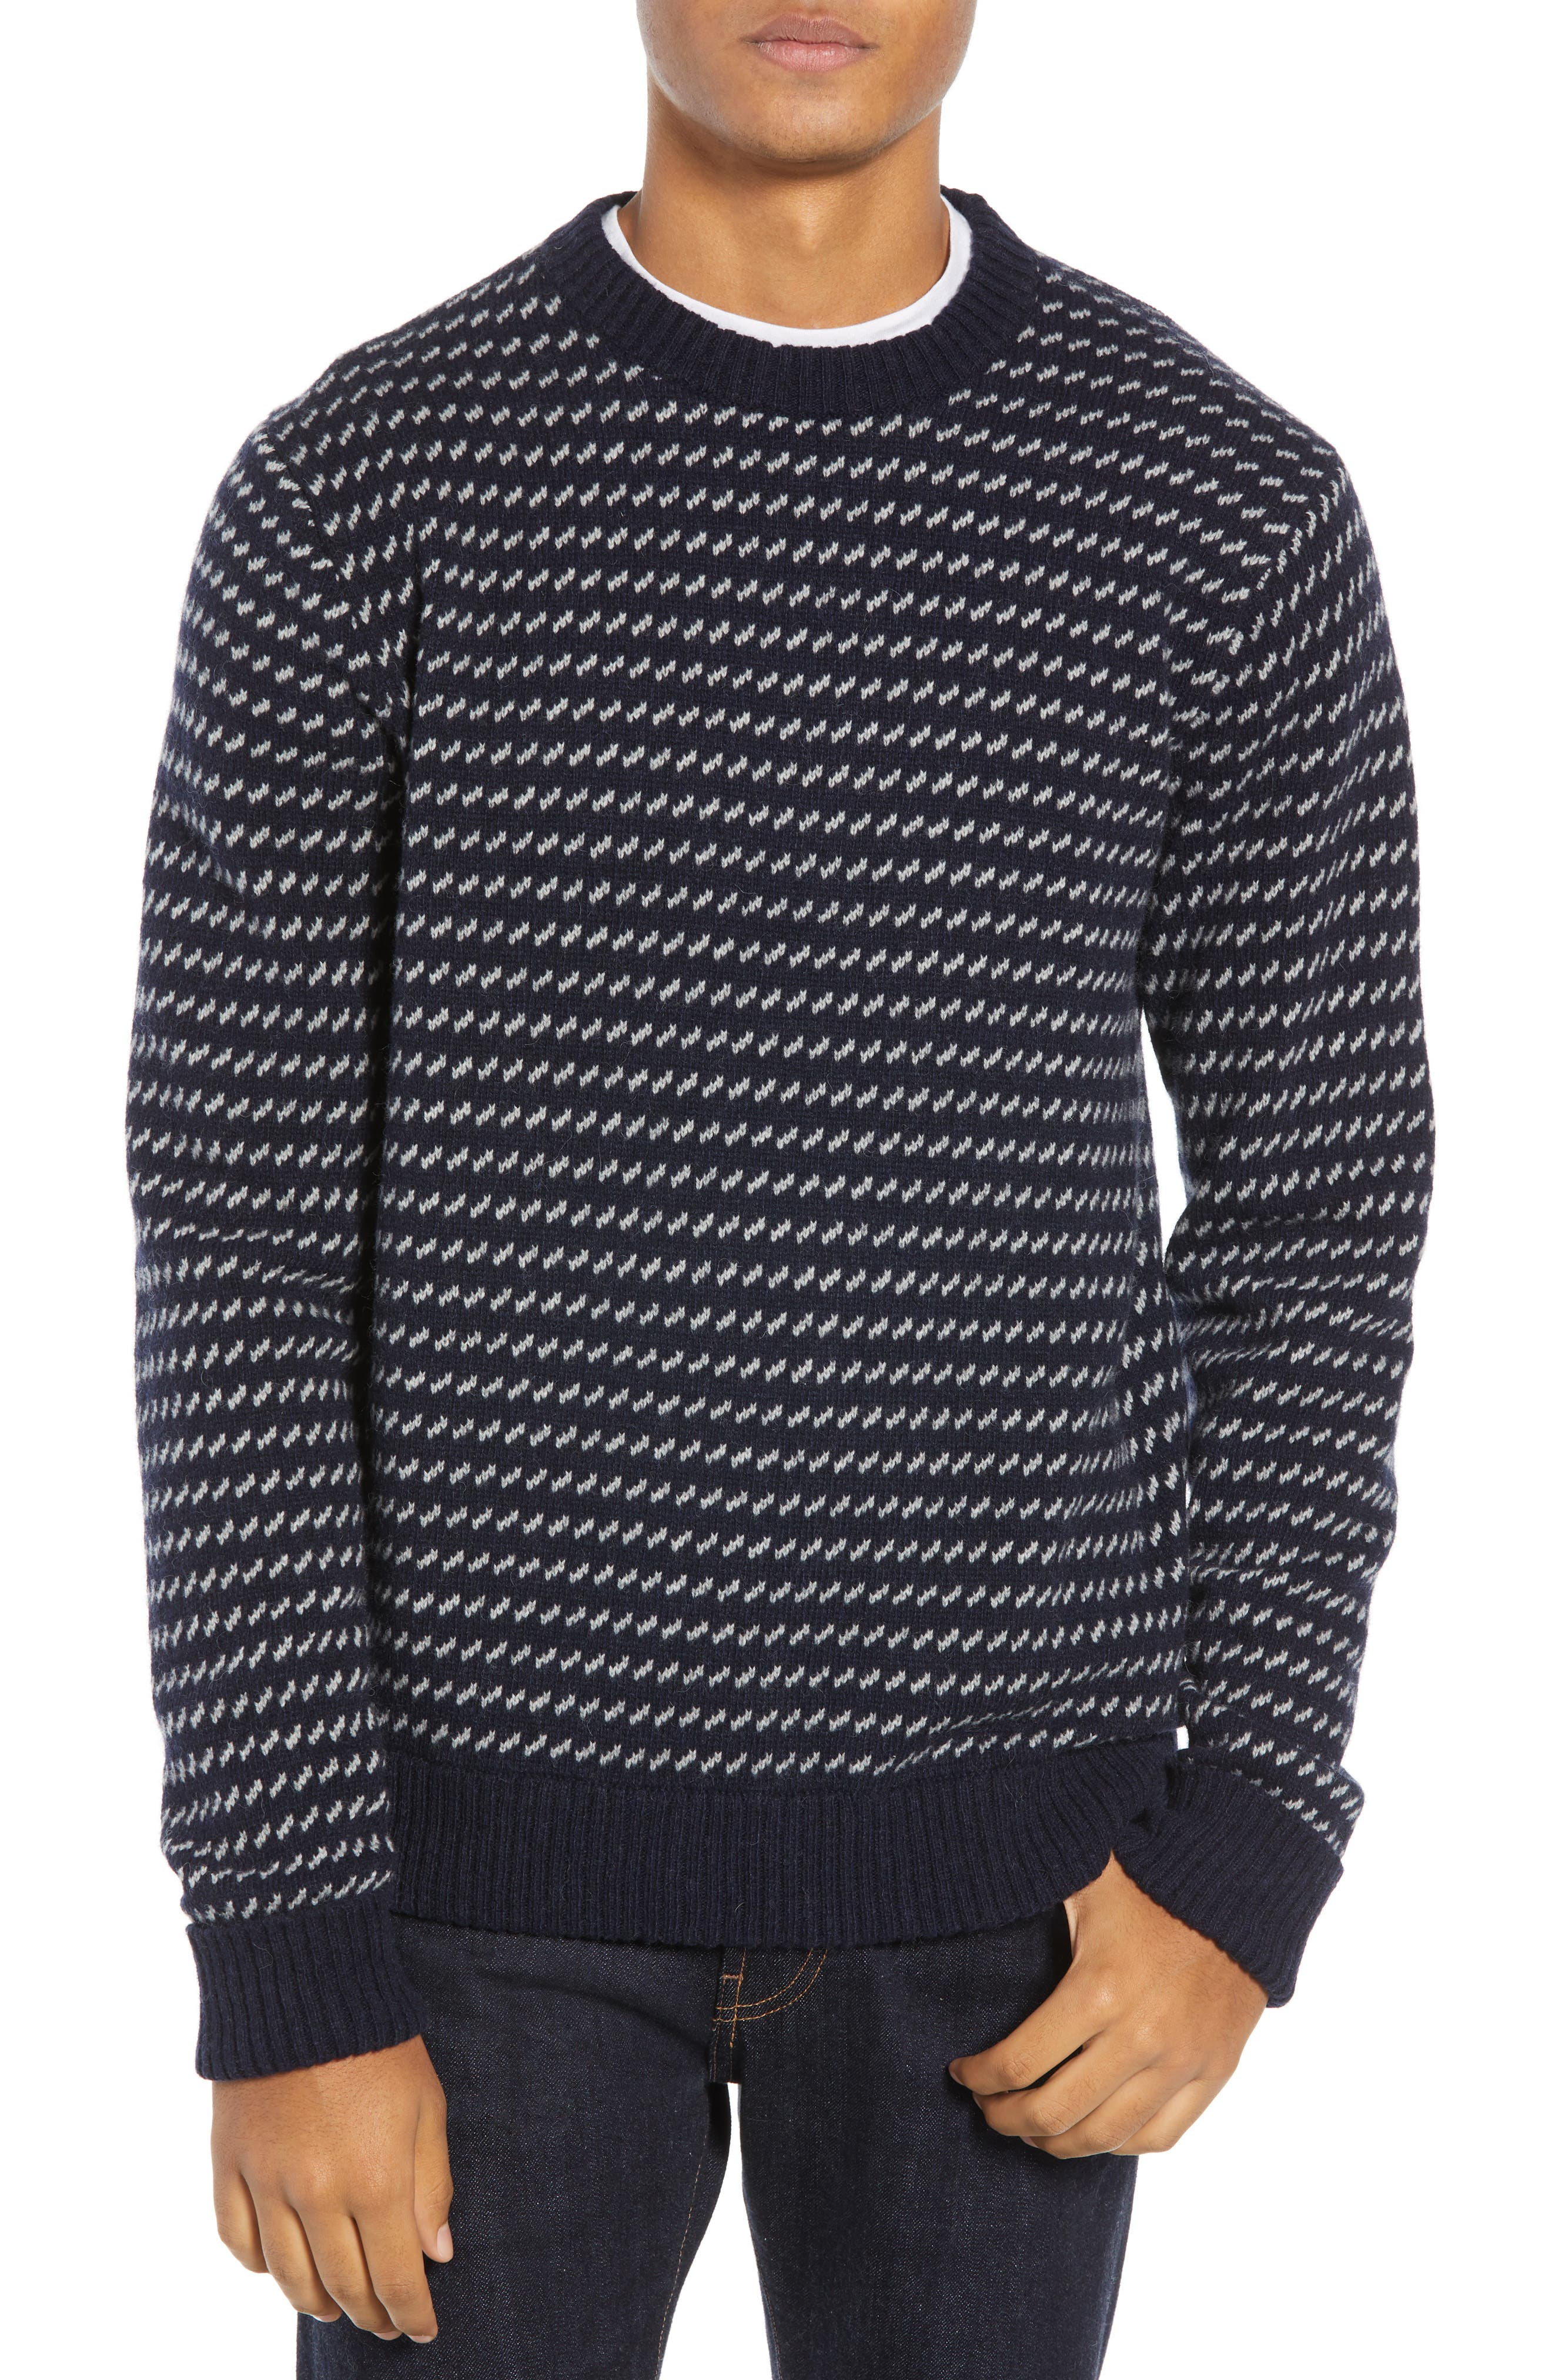 Patagonia Recycled Wool Blend Sweater